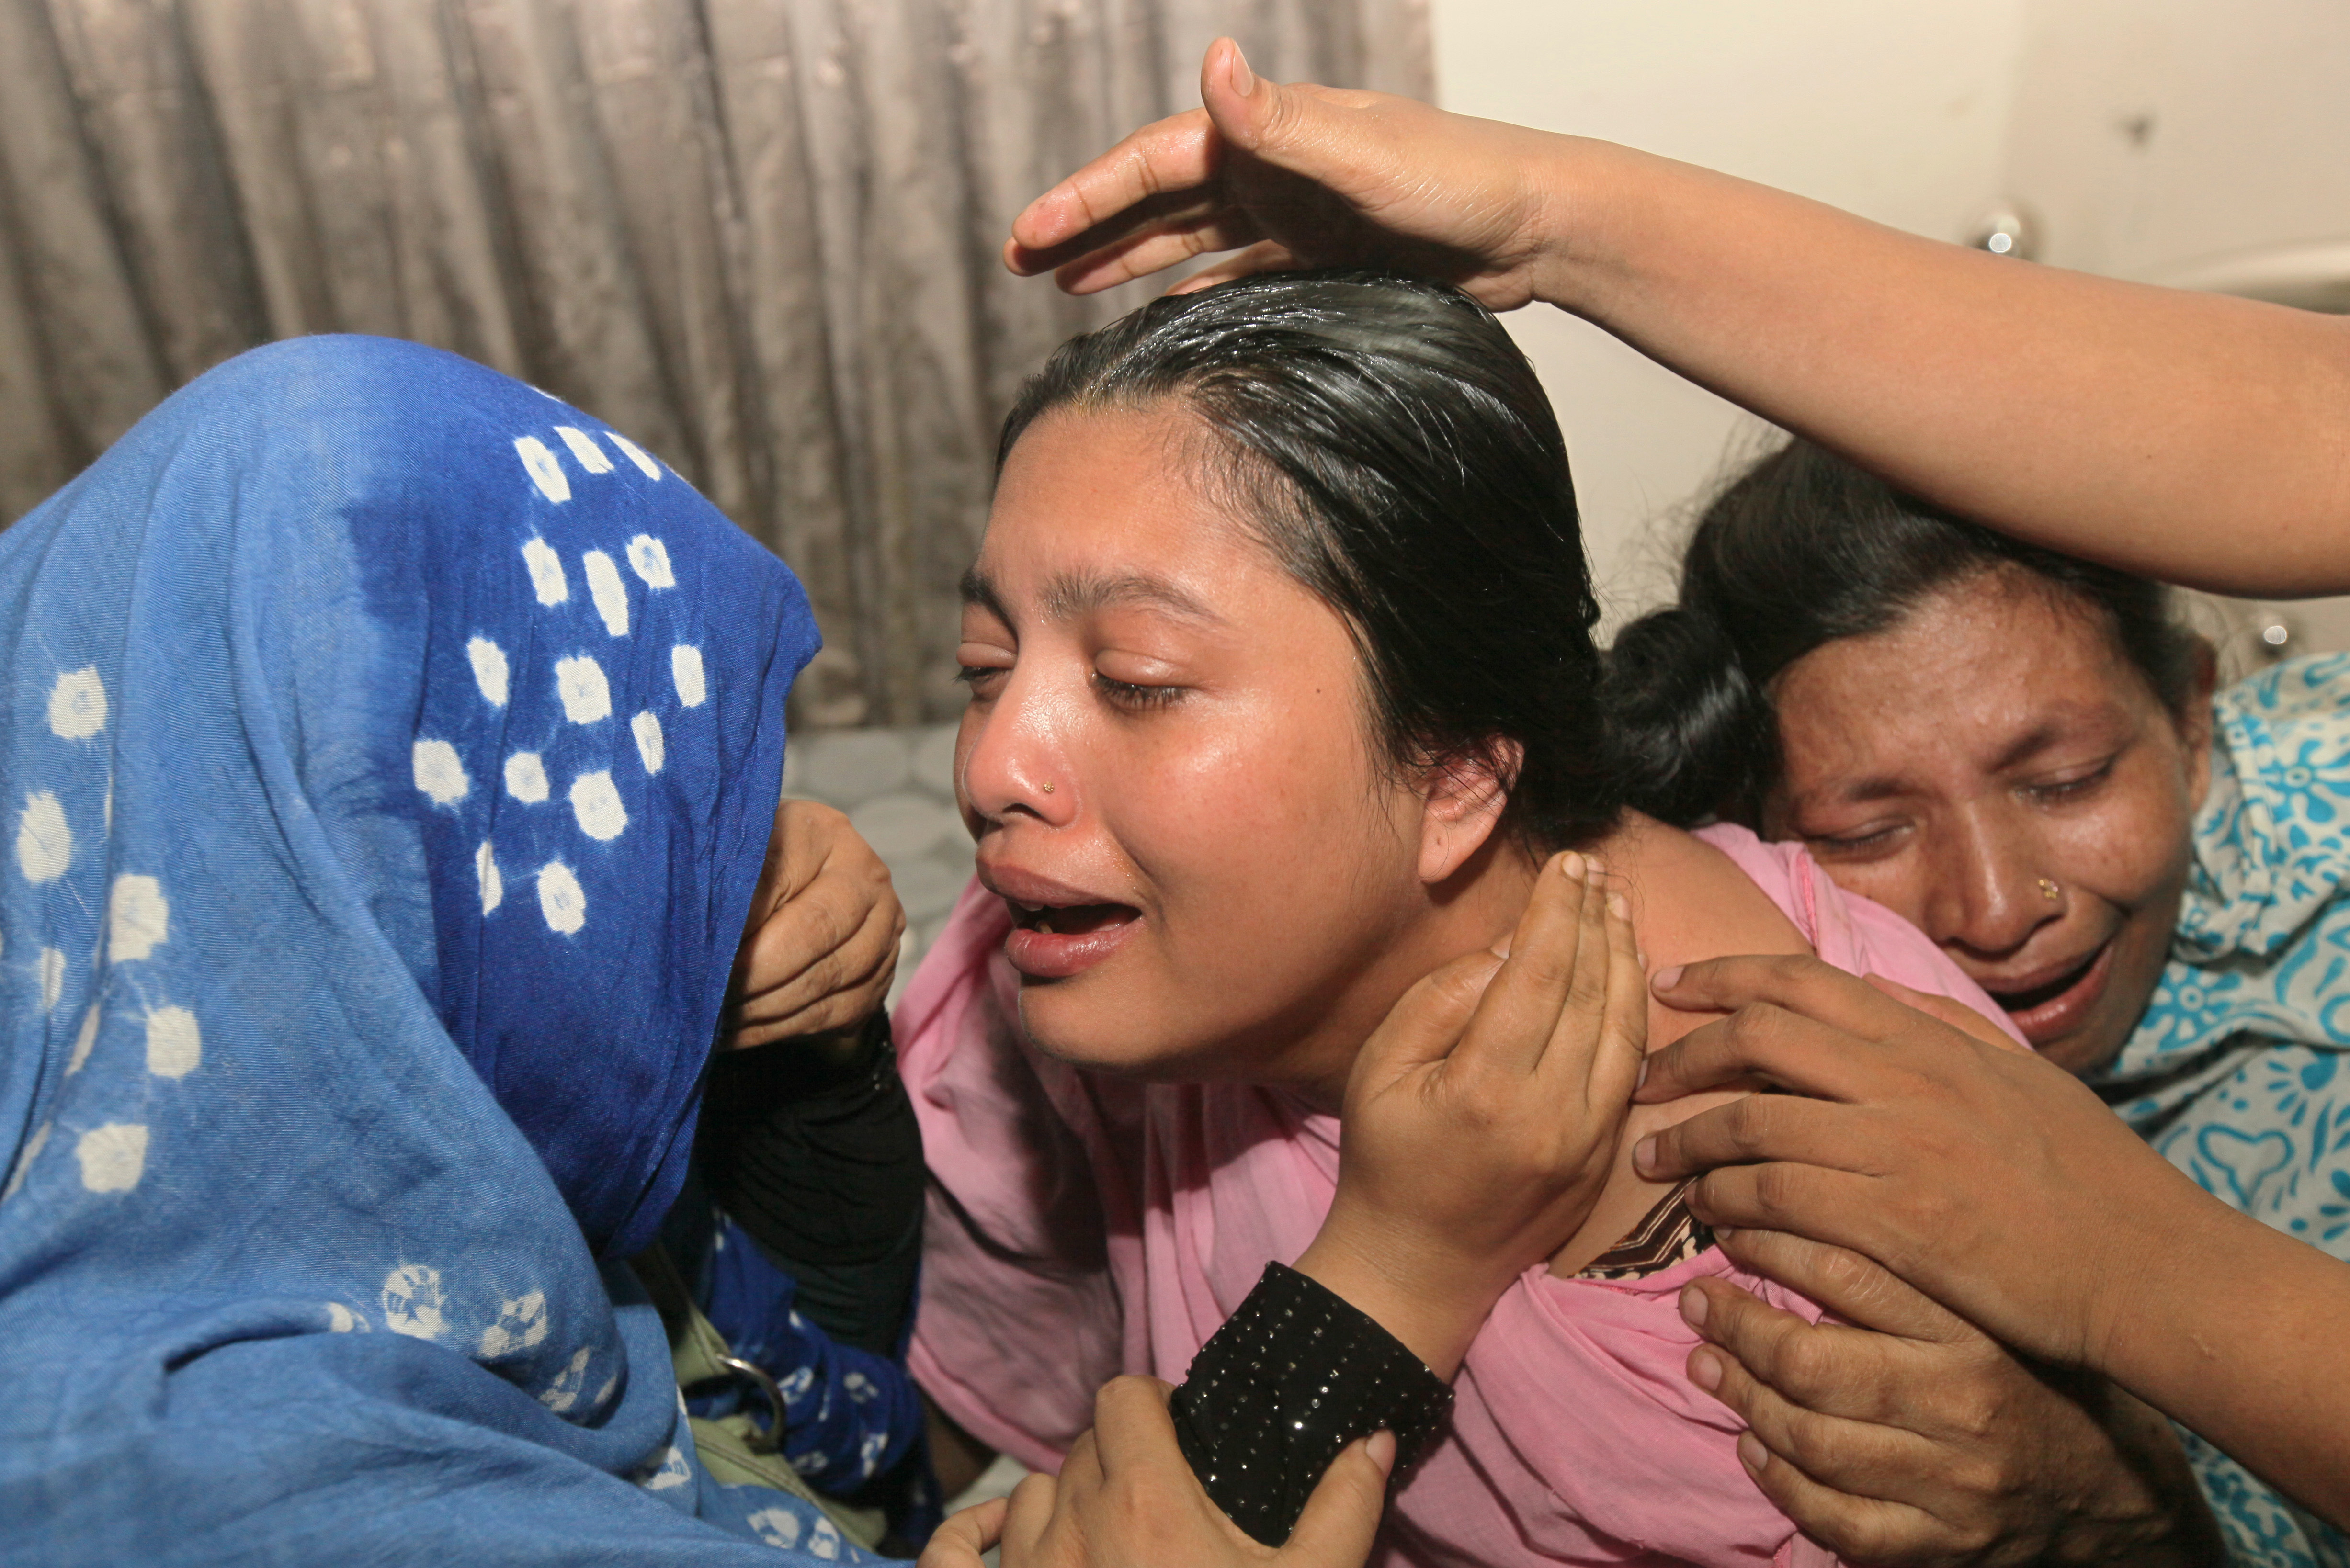 Bangladeshi relatives of teenage cricketer Babul Shikdar, 16, who died after allegedly being beaten by a batsman during a friendly cricket match, react at their home in Dhaka on May 11, 2016. A teenage cricketer in Bangladesh was allegedly killed by a stump-wielding batsman after he taunted the umpire over a no-ball delivery, police said May 12. Sixteen-year-old Babul Shikdar was wicketkeeping during a neighbourhood match with friends in the capital Dhaka on Wednesday when the batsman was given out, local police chief Bhuiyan Mahboob Hasan said. / AFP PHOTO / STR